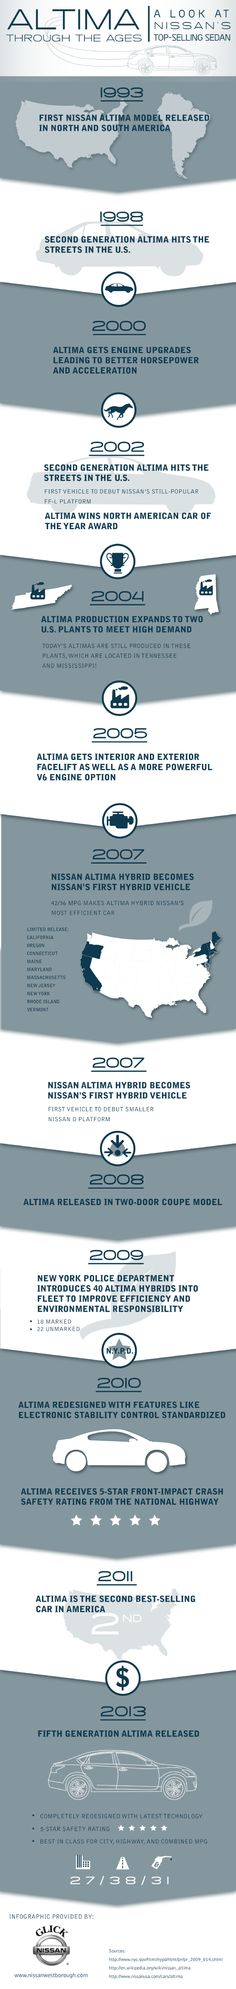 2013 marks the birth of the all-new, completely redesigned Nissan Altima. This is the 5th generation of this top-selling vehicle, boasting a 5-star safety rating. Learn about the innovations that led to today's model in this infographic from a Westborough Nissan dealer. Source: http://www.nissanwestborough.com/643919/2013/02/12/altima-through-the-ages-a-look-at-nissans-top-selling-sedan-infographic.html